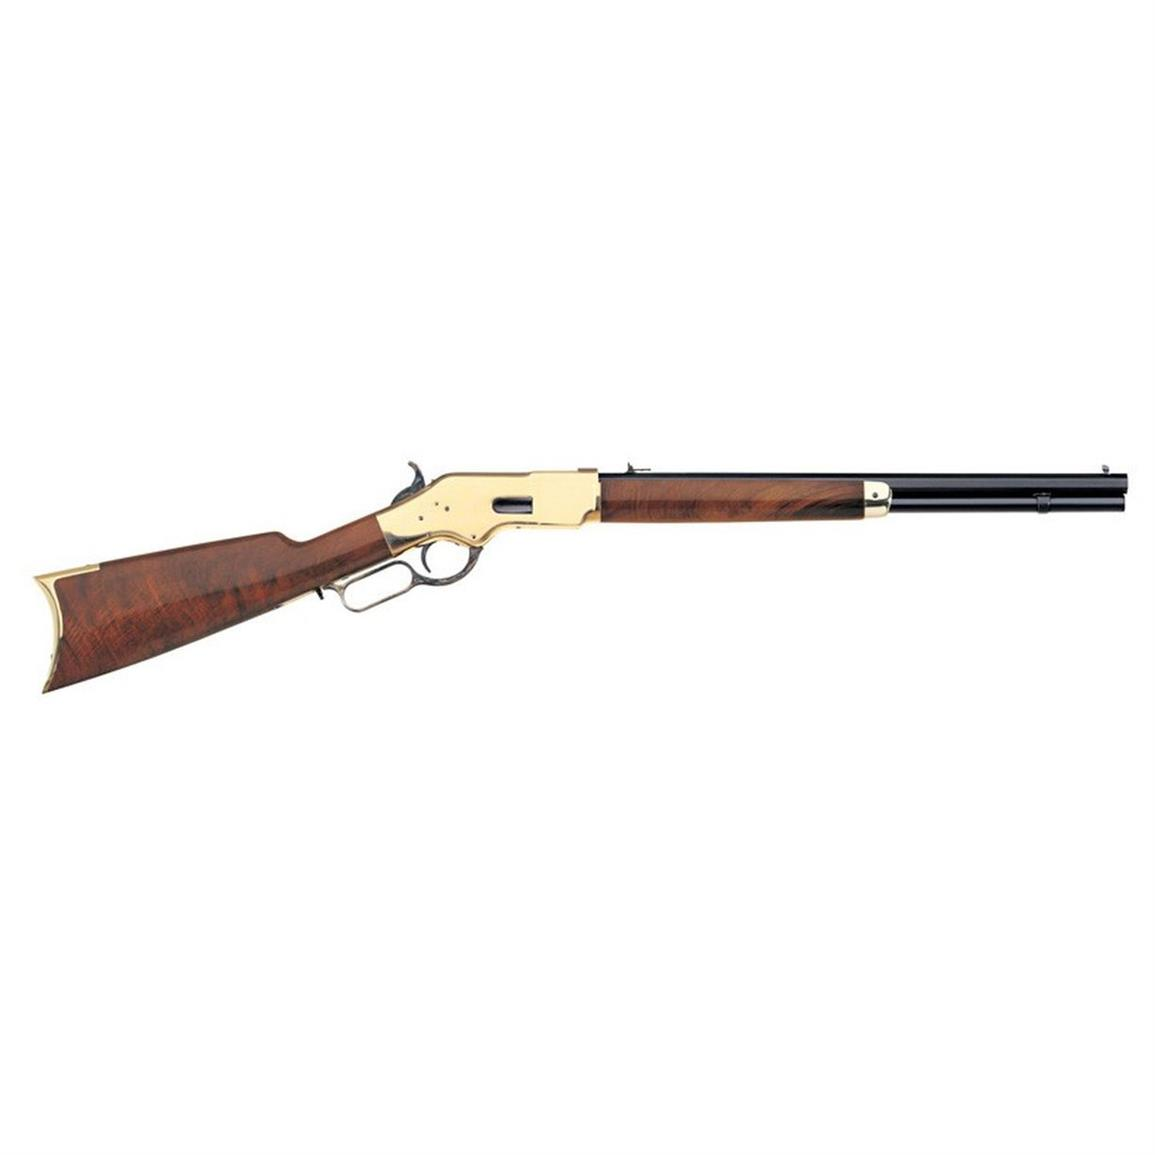 "Taylor's & Co. Uberti 1866 Sporting Rifle, Lever Action, .45 Colt, 20"" Barrel, 10+1 Rounds"